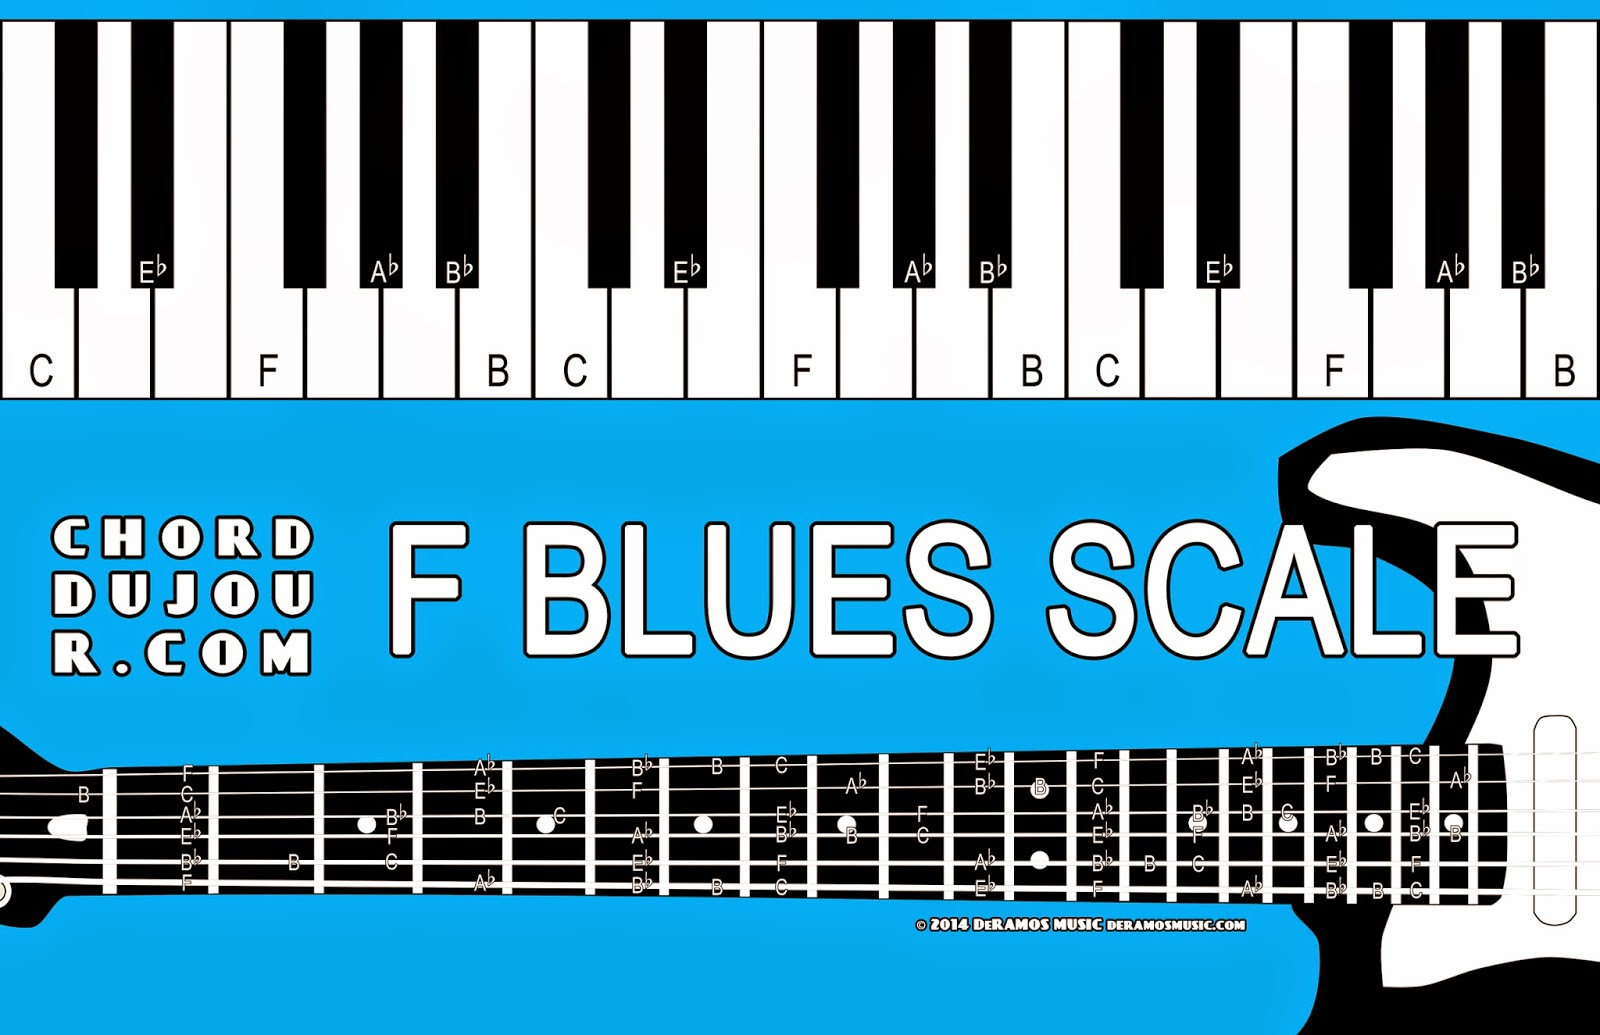 40 Musical Scale 5th Note